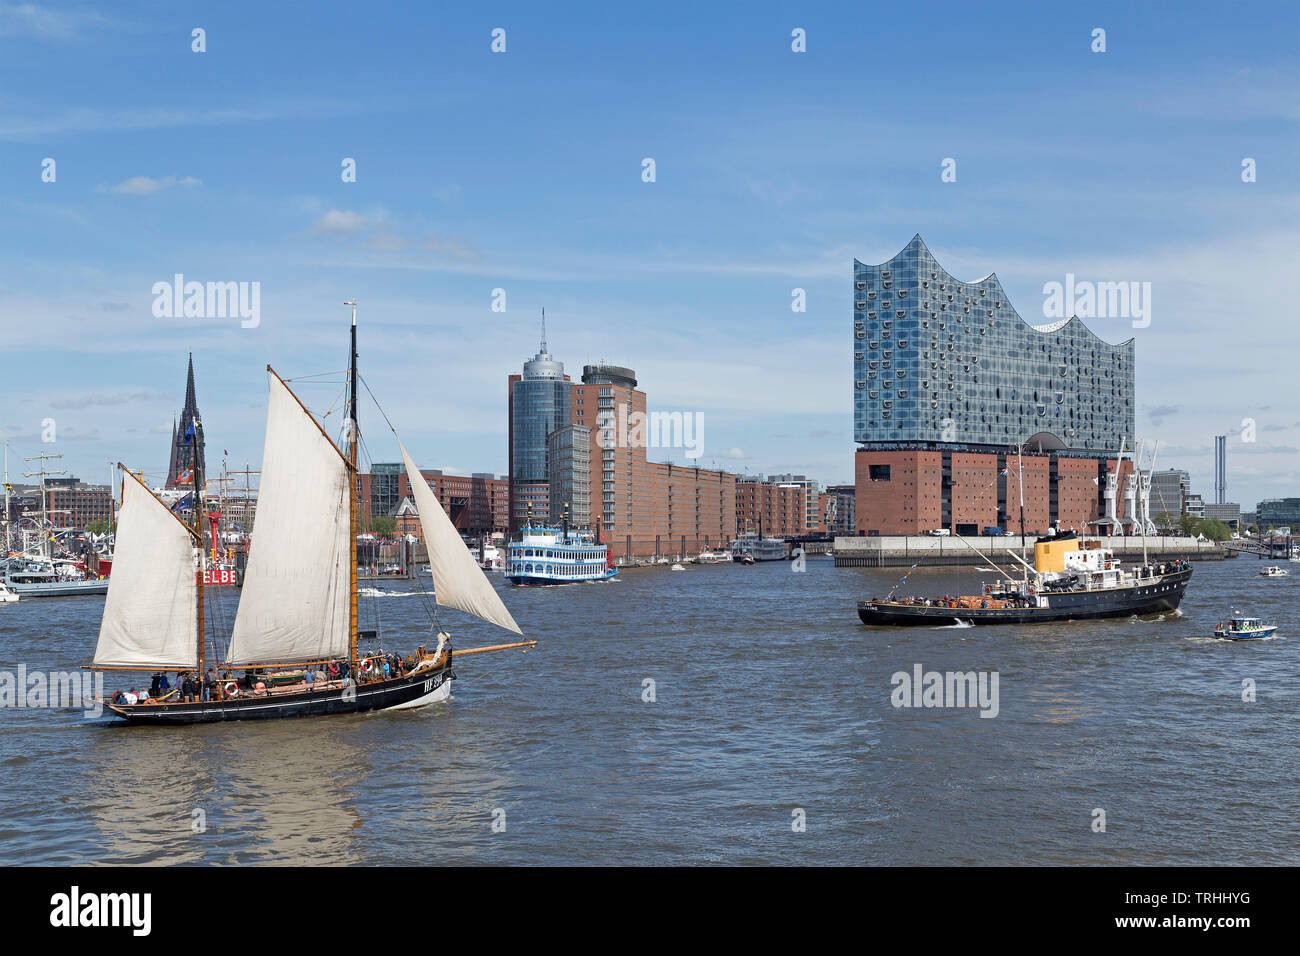 sailing boat in front of Elbe Philharmonic Hall, 830. Harbour Birthday, Harbour, Hamburg, Germany - Stock Image